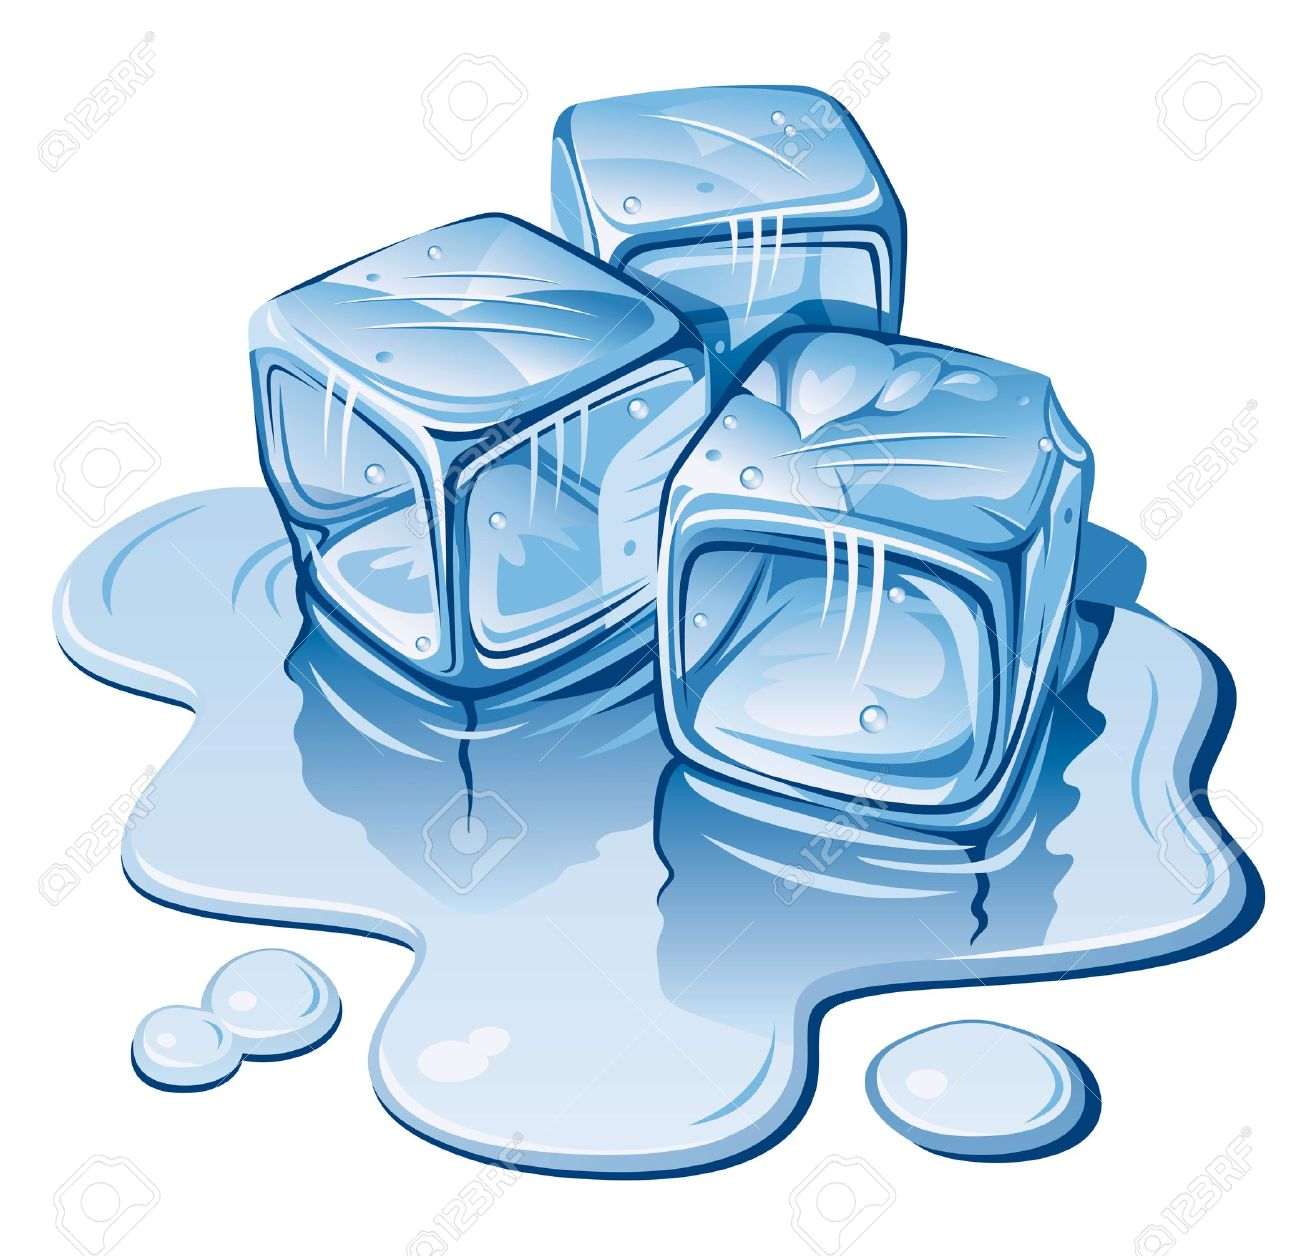 Ice Cubes Drawing Stylized Ice Cubes on White